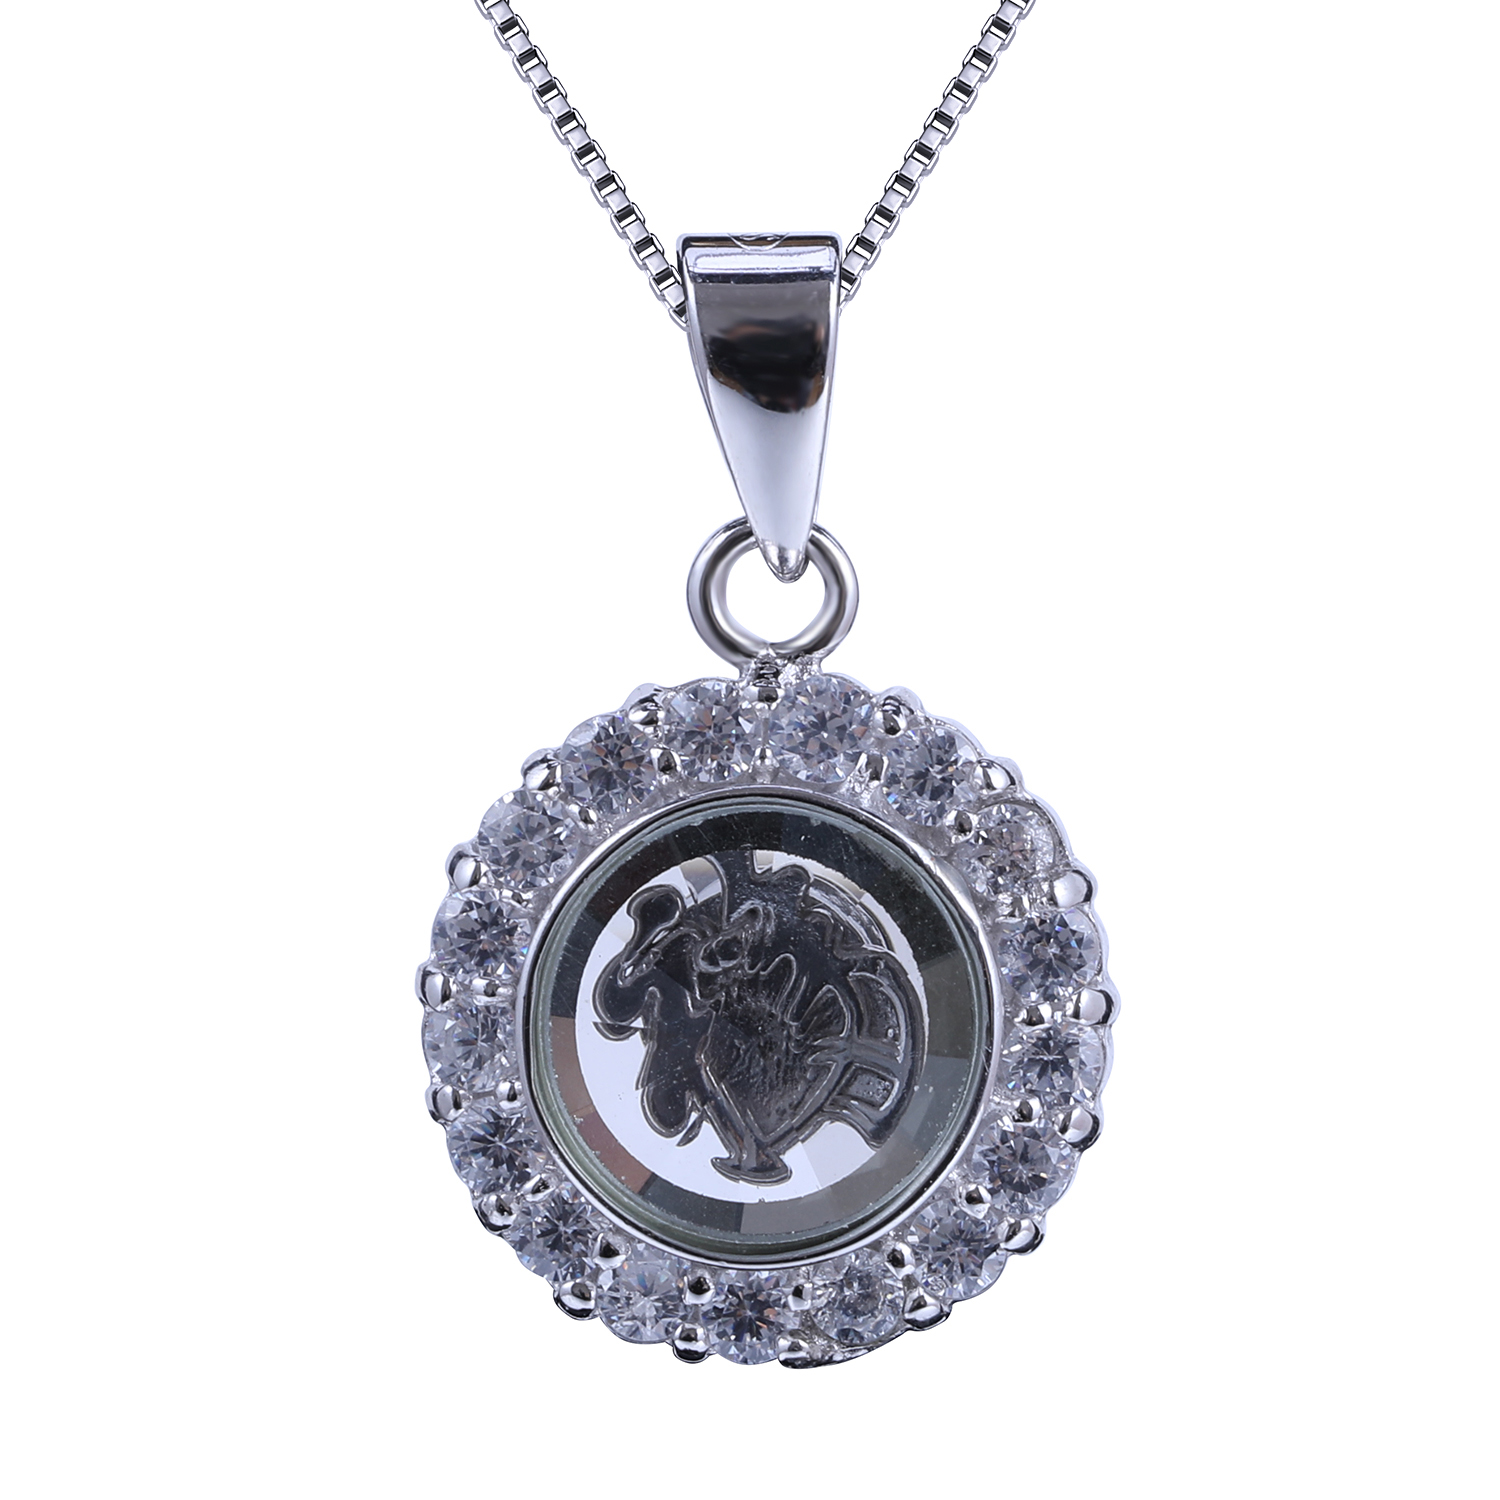 Wholesale necklace charms inside online buy best necklace charms customized wholesales silver round strongnecklacestrong with strong aloadofball Images